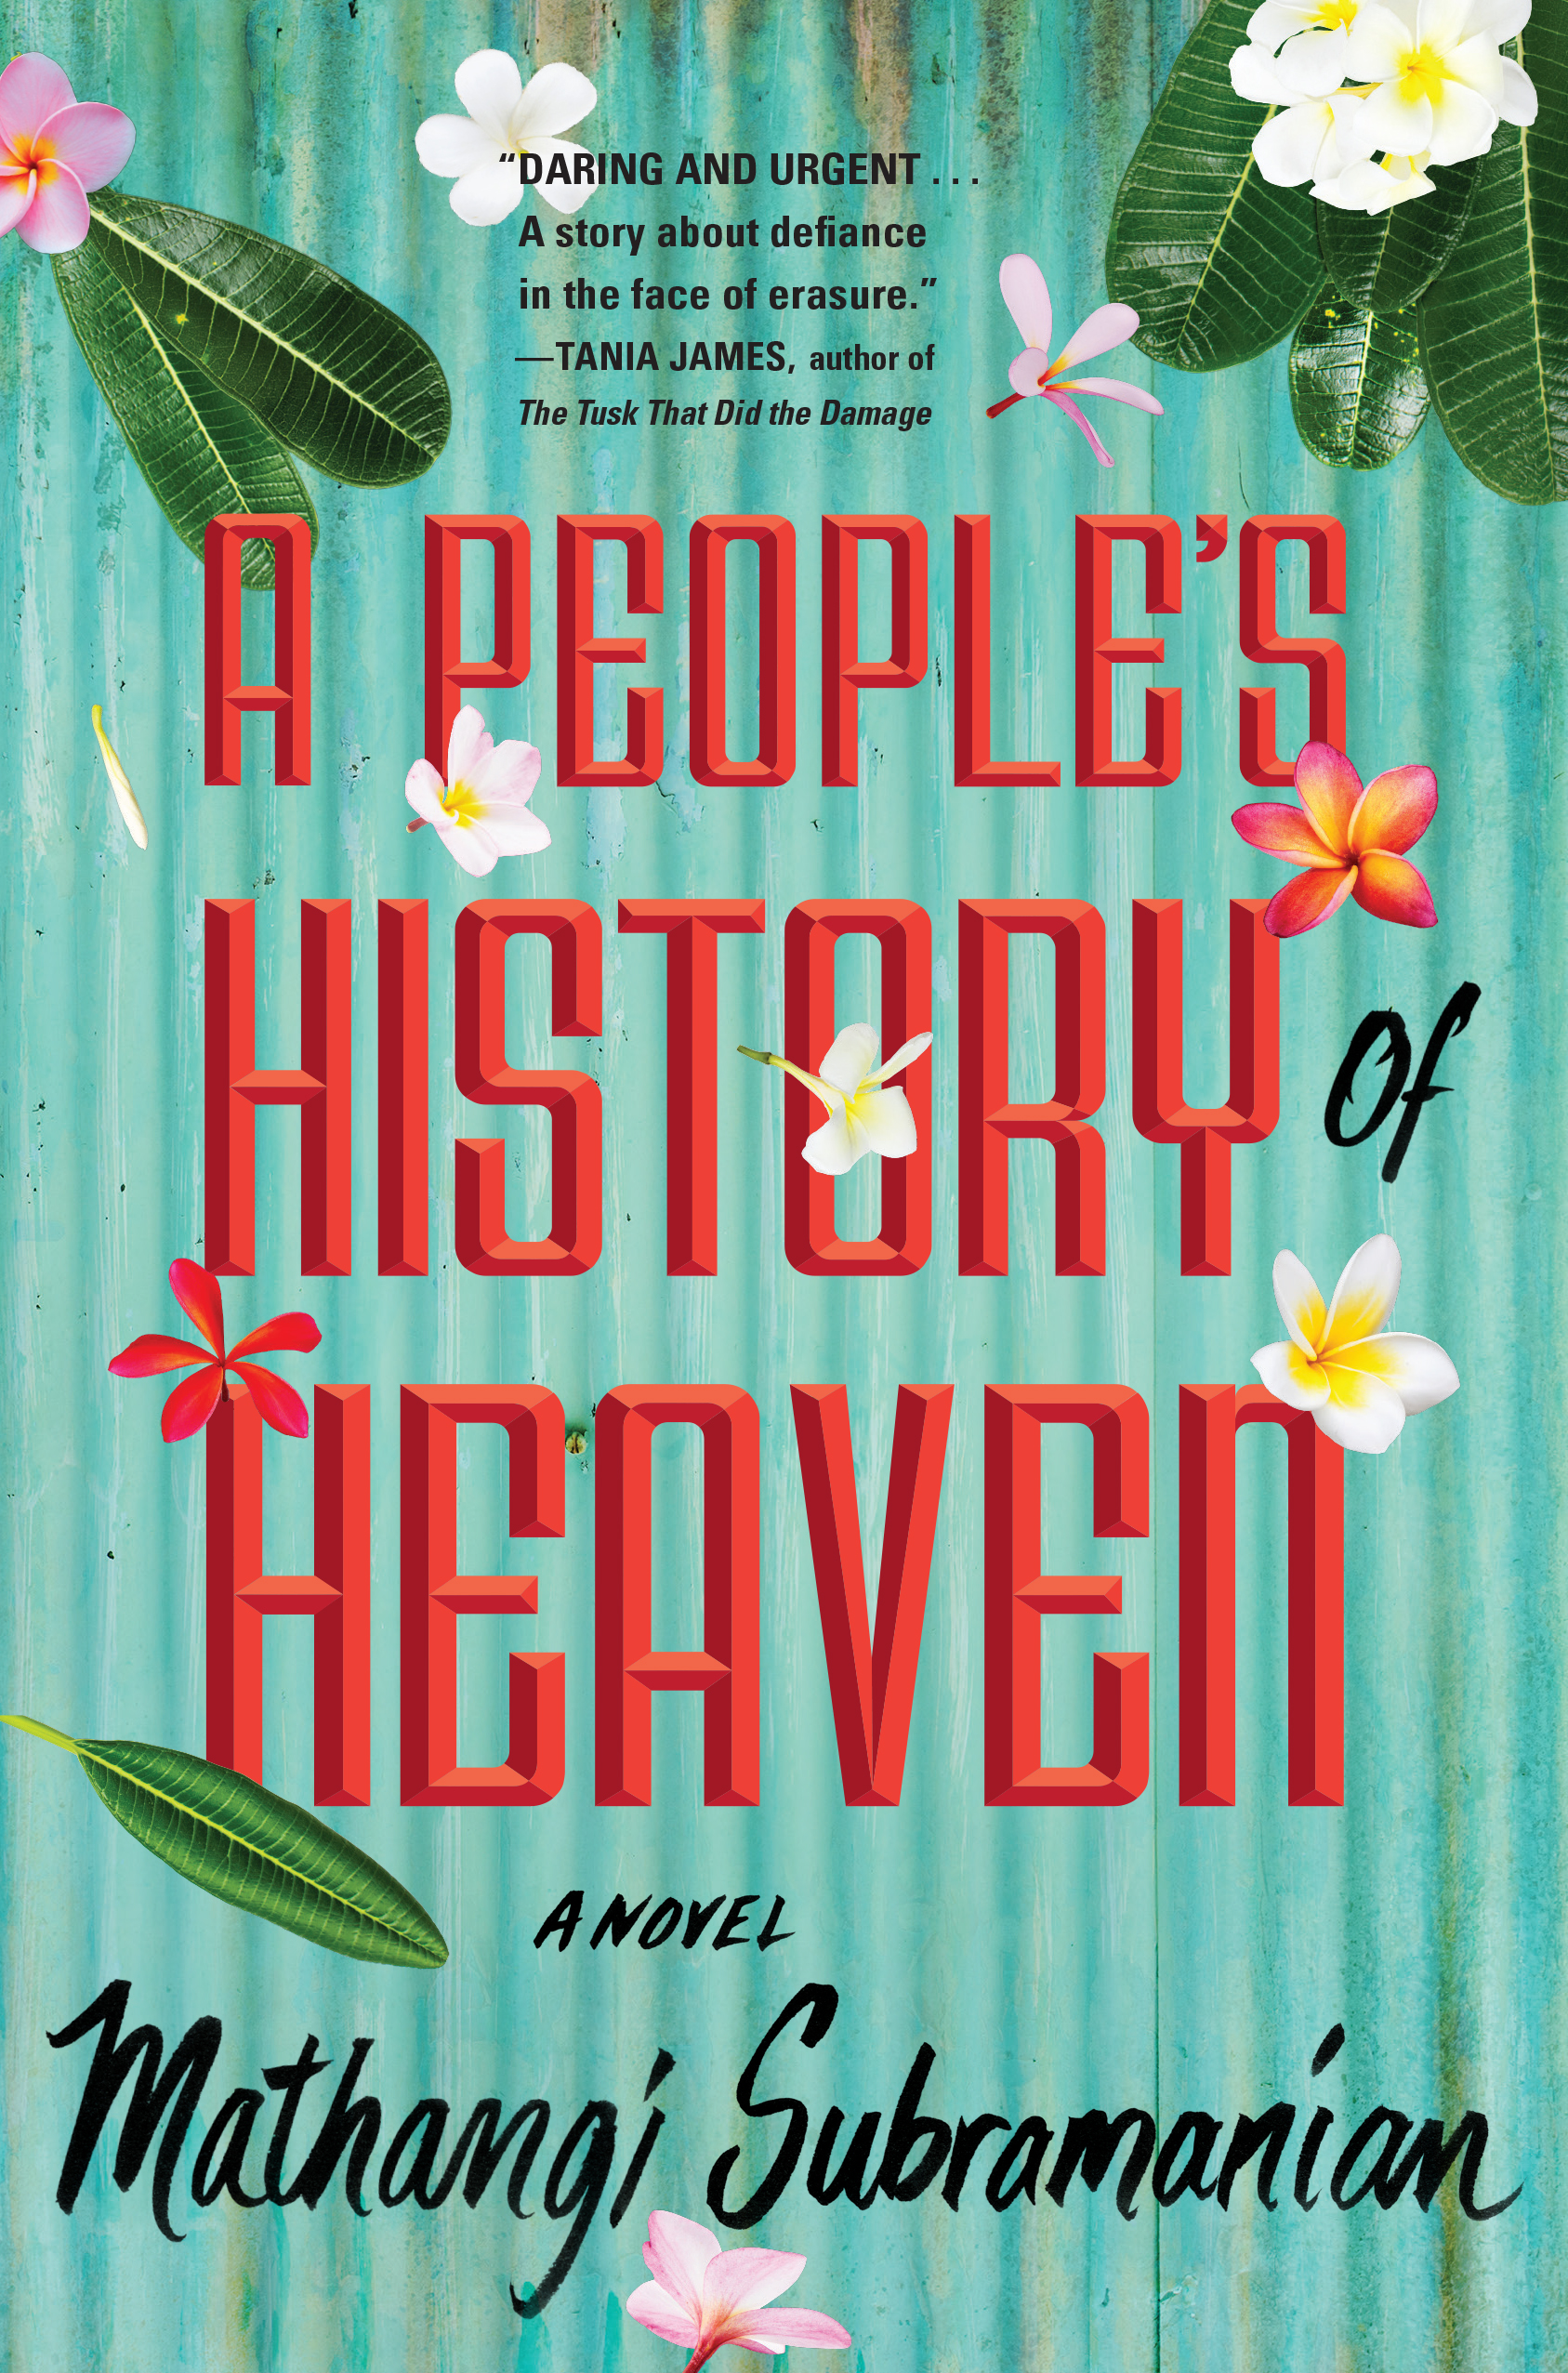 Book cover for A People's History of Heaven